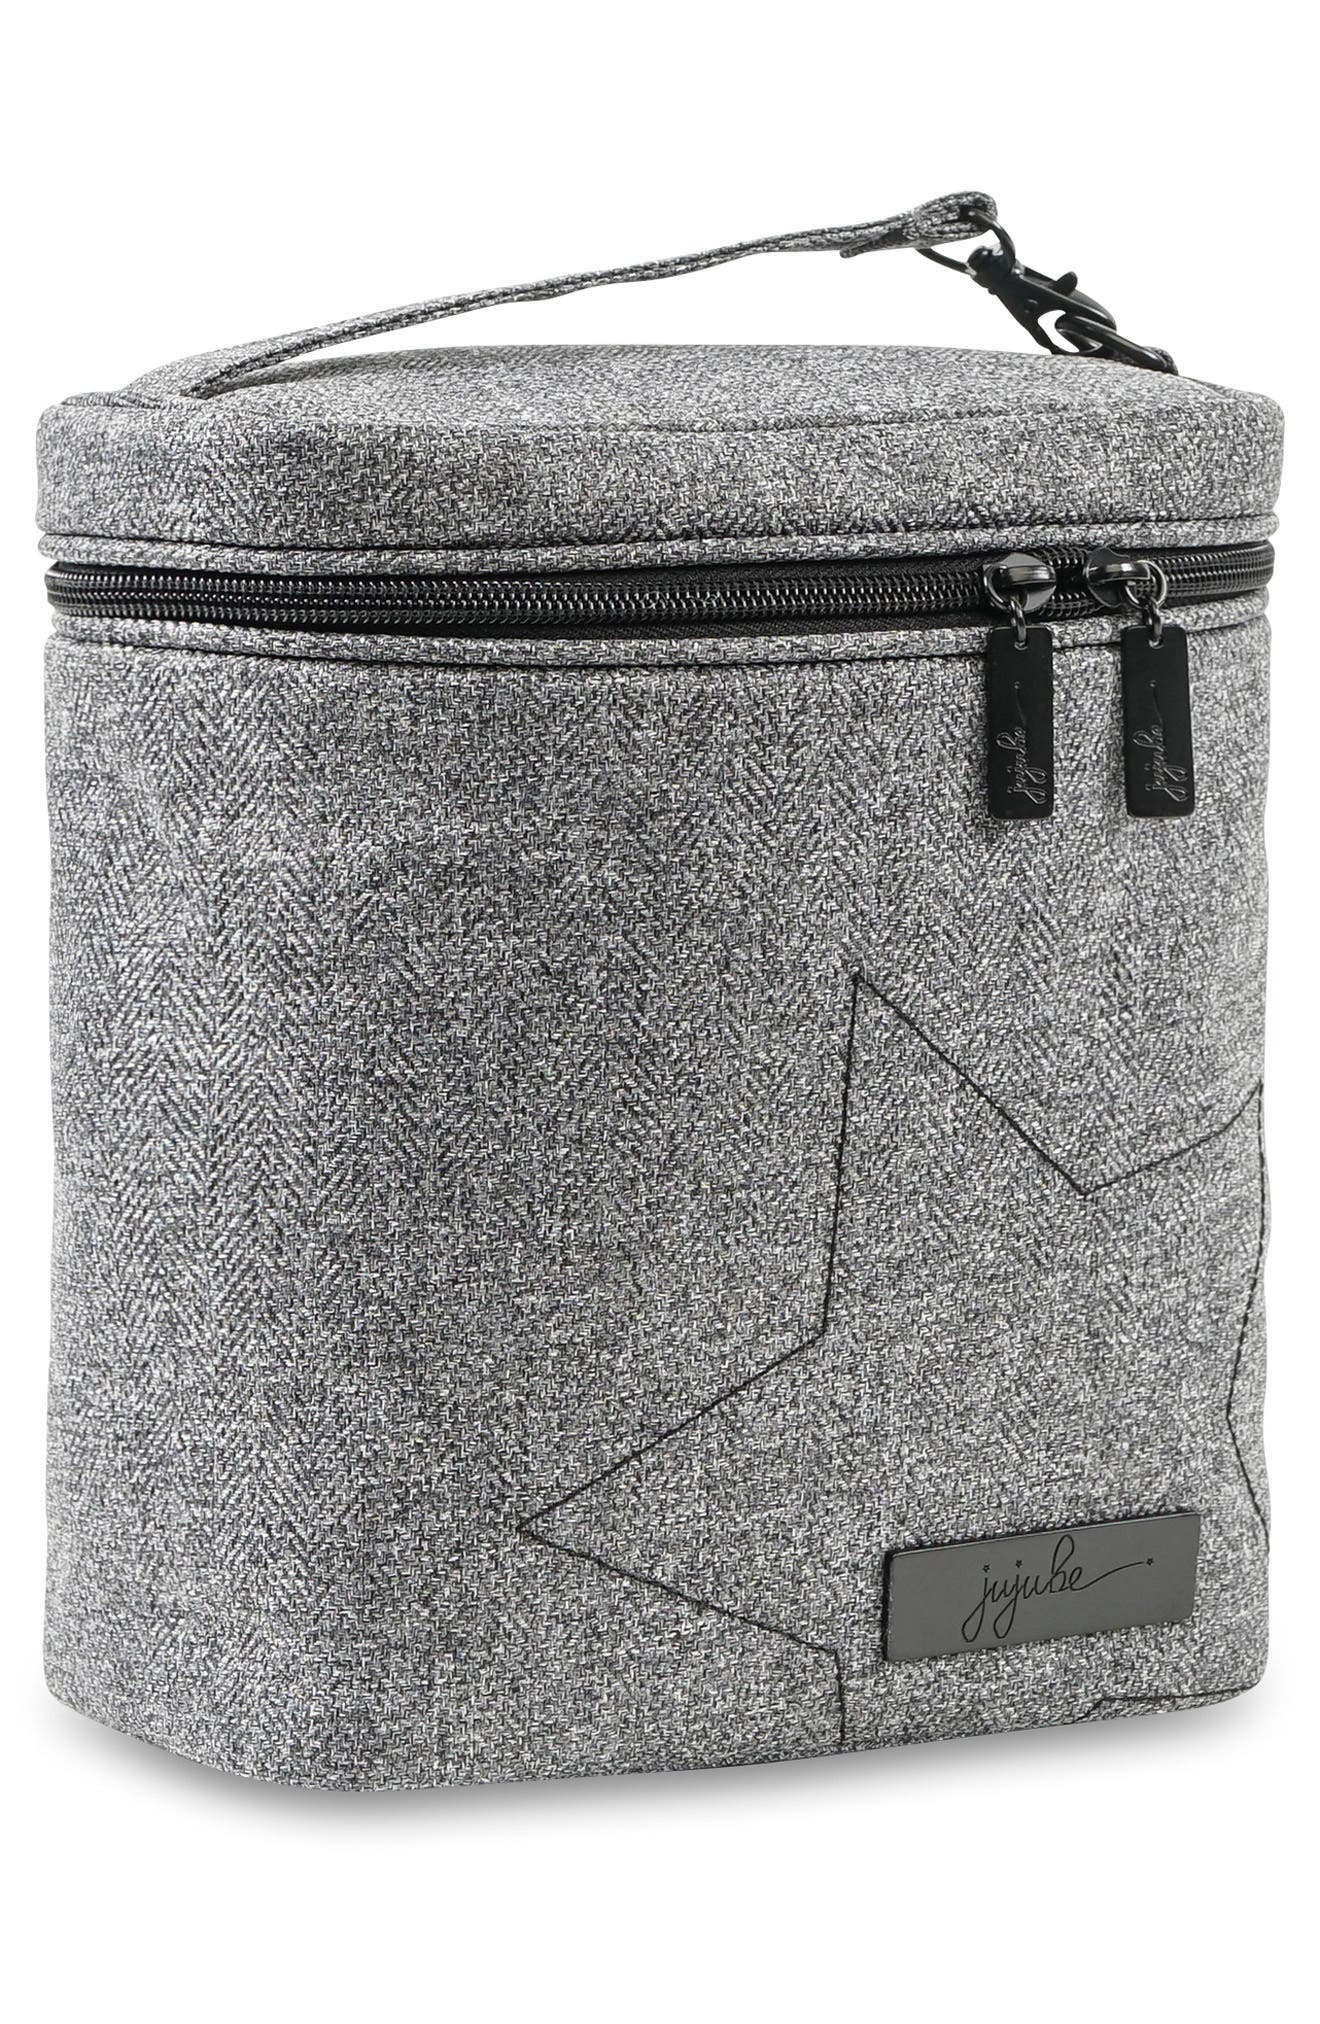 'Fuel Cell - Onyx Collection' Lunch Bag,                             Alternate thumbnail 3, color,                             GRAY MATTER